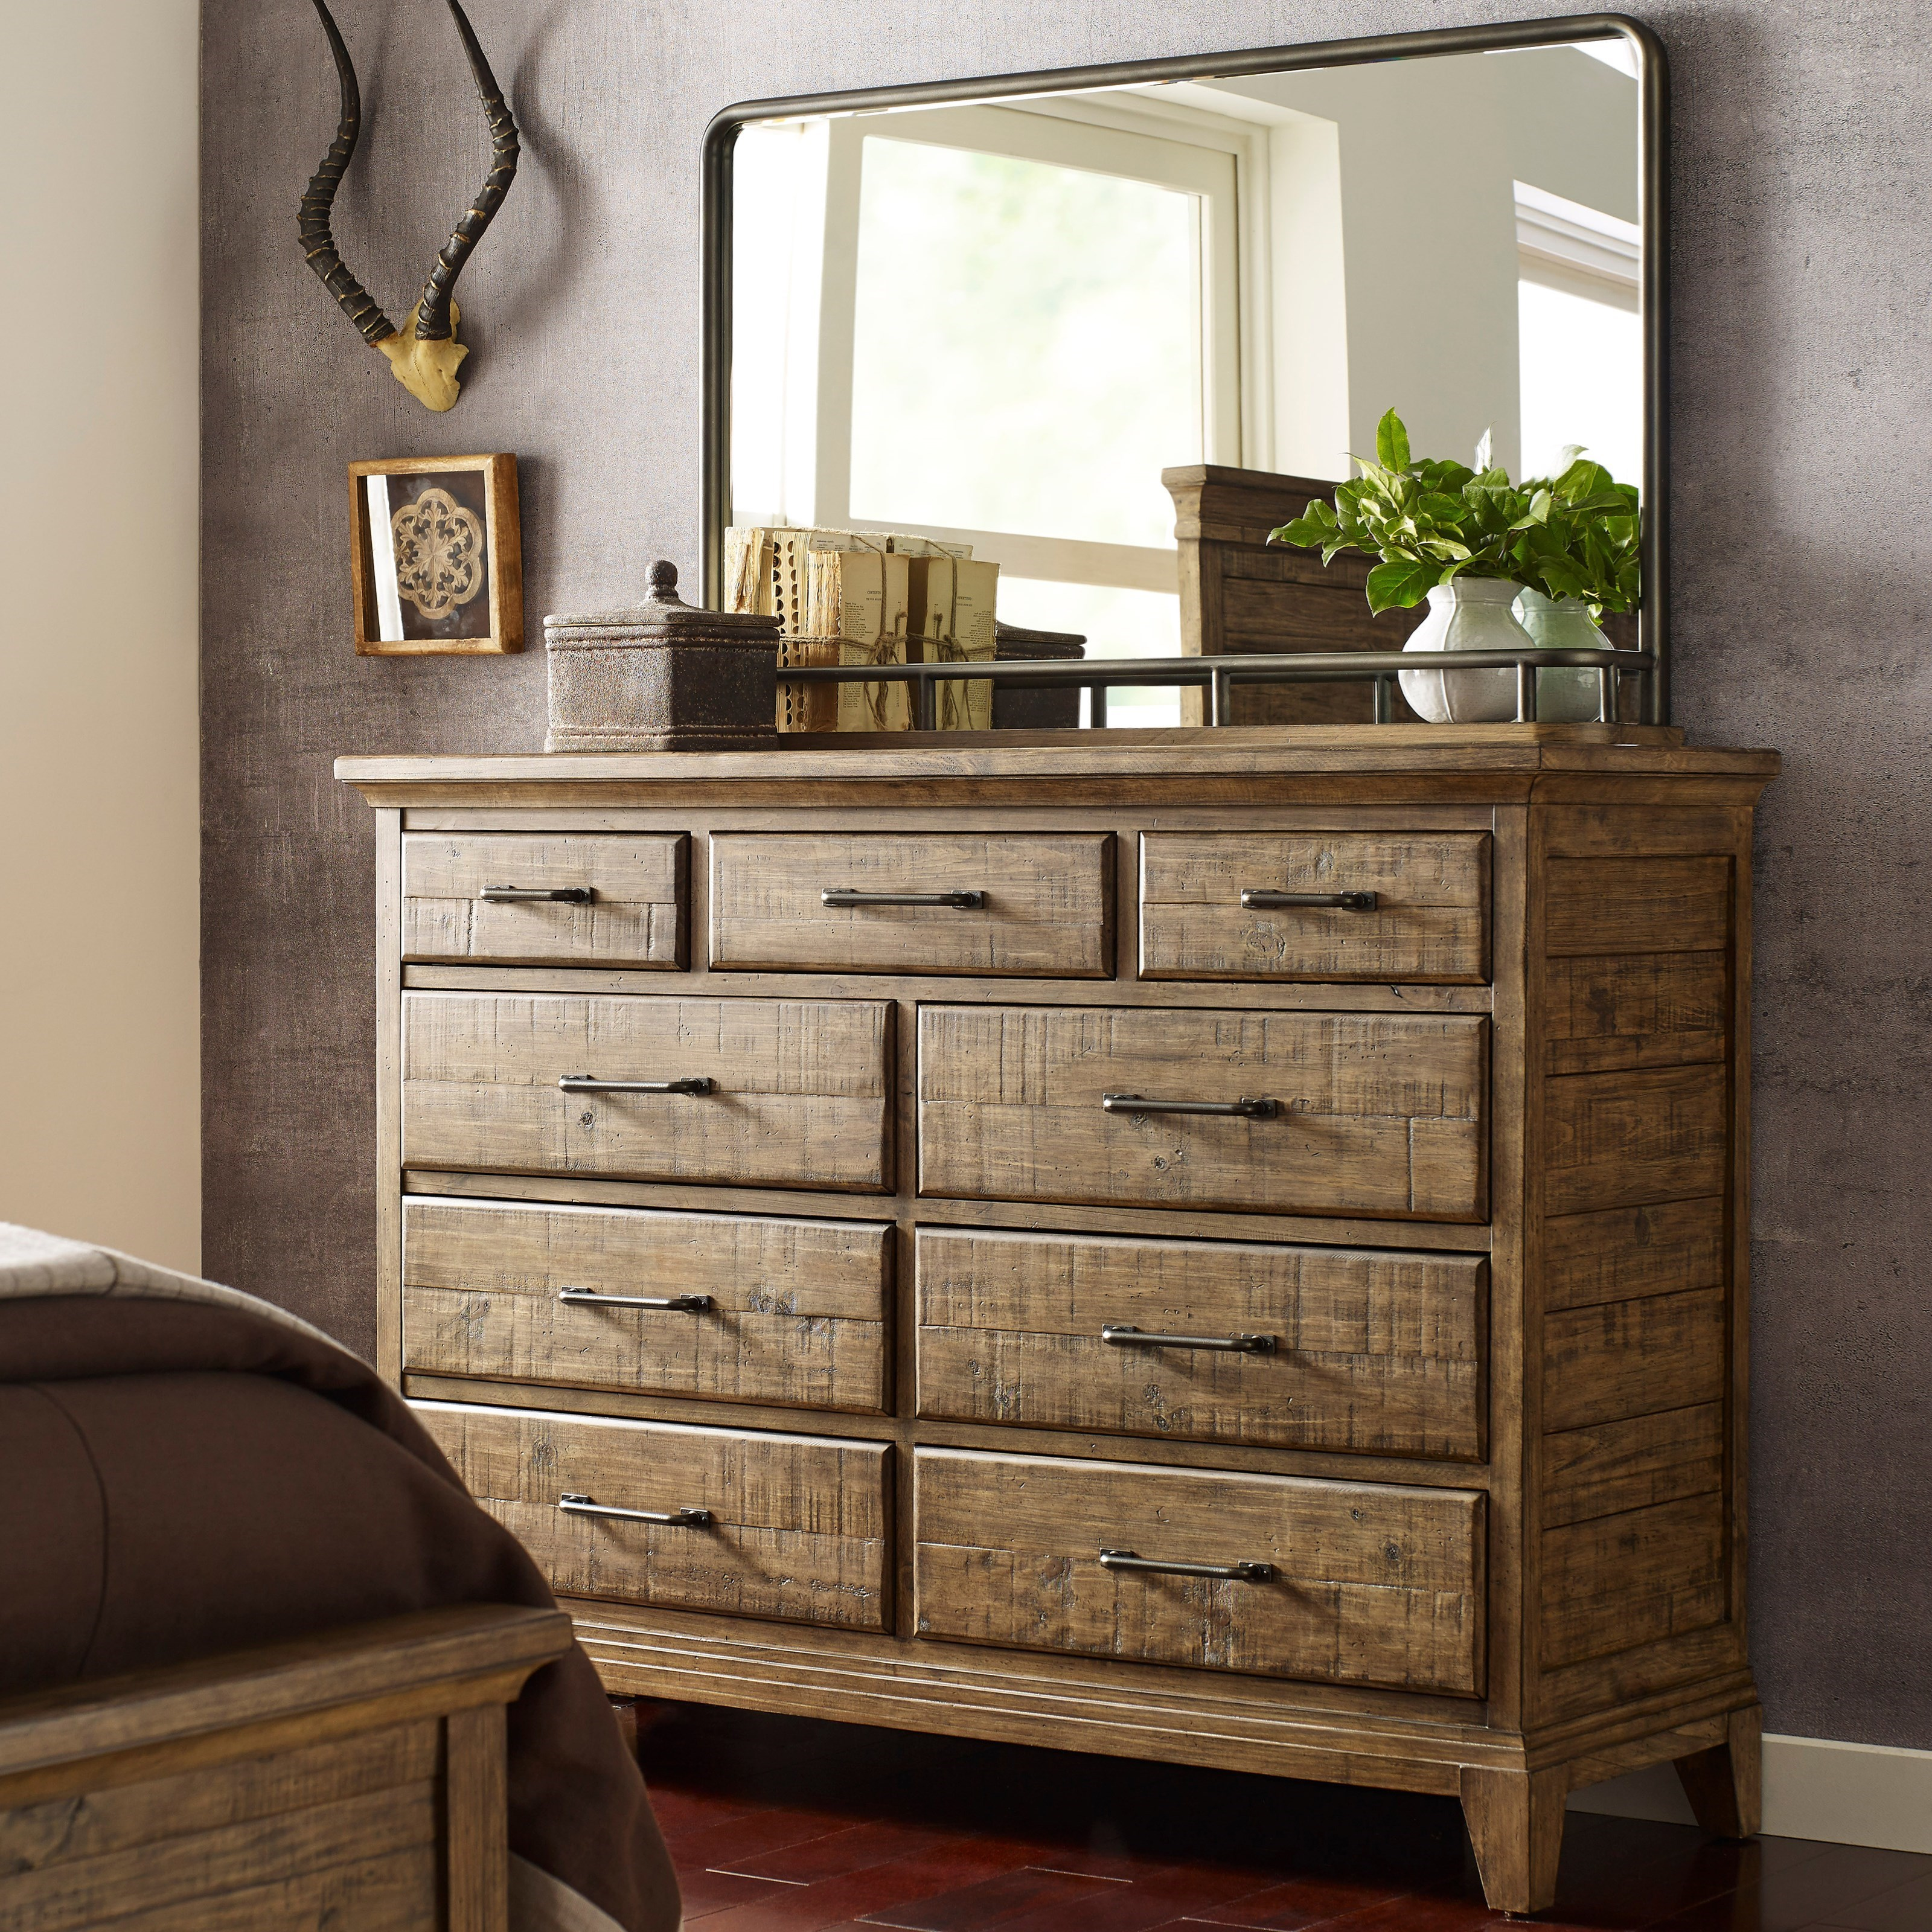 Plank Road Westwood Bureau and Mirror Set by Kincaid Furniture at Northeast Factory Direct